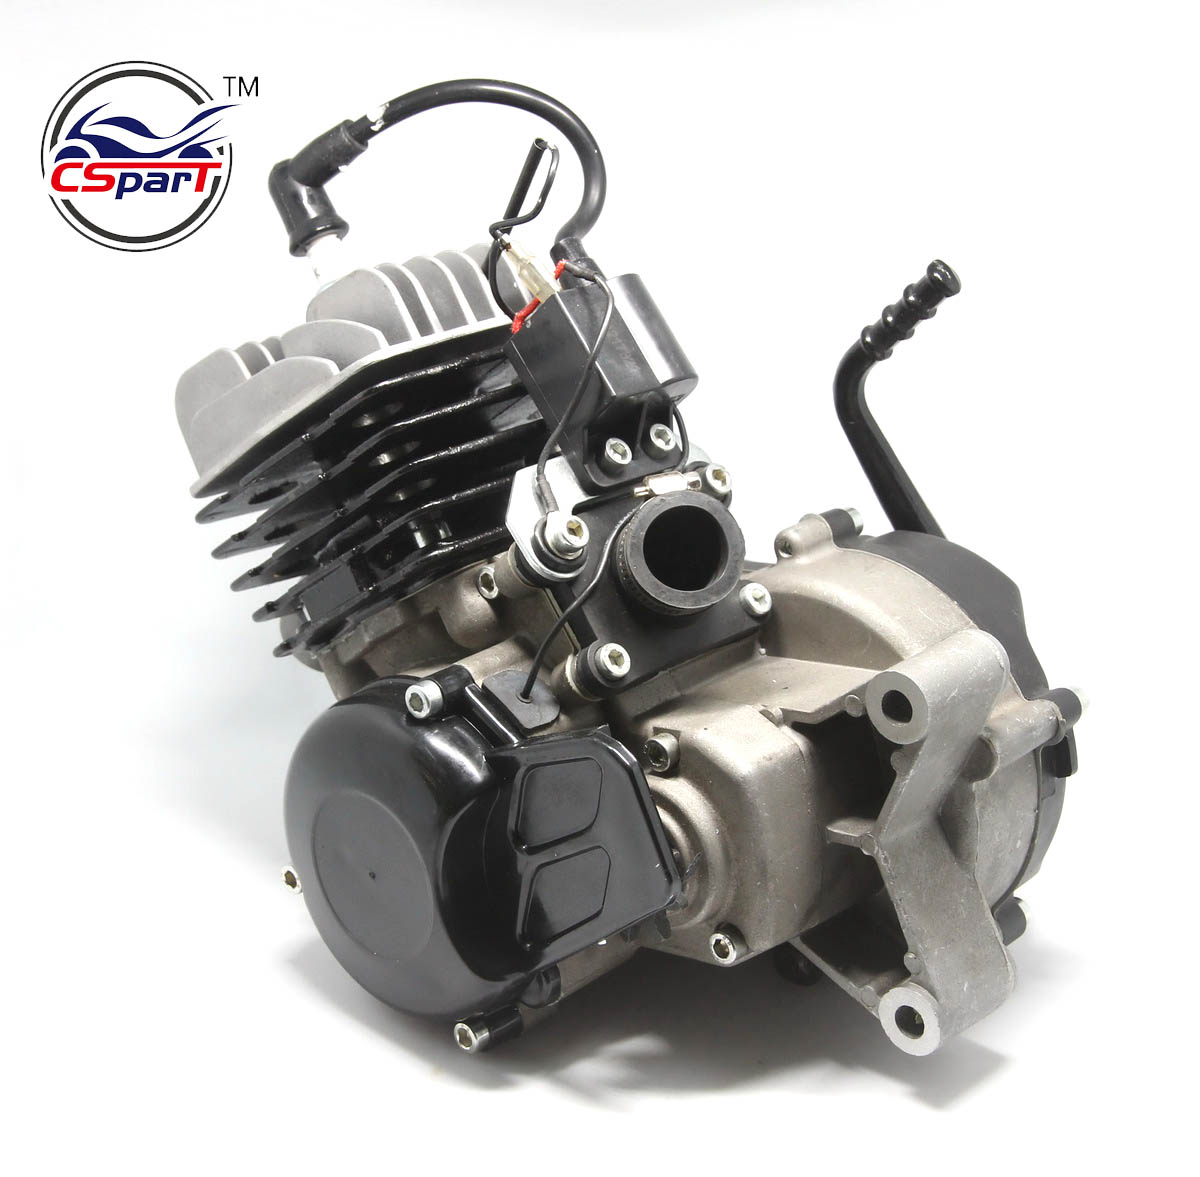 US $330 0 |49CC air Cooled Engine for 05 KTM 50 SX PRO SENIOR Dirt Pit  Cross Bike-in ATV Parts & Accessories from Automobiles & Motorcycles on